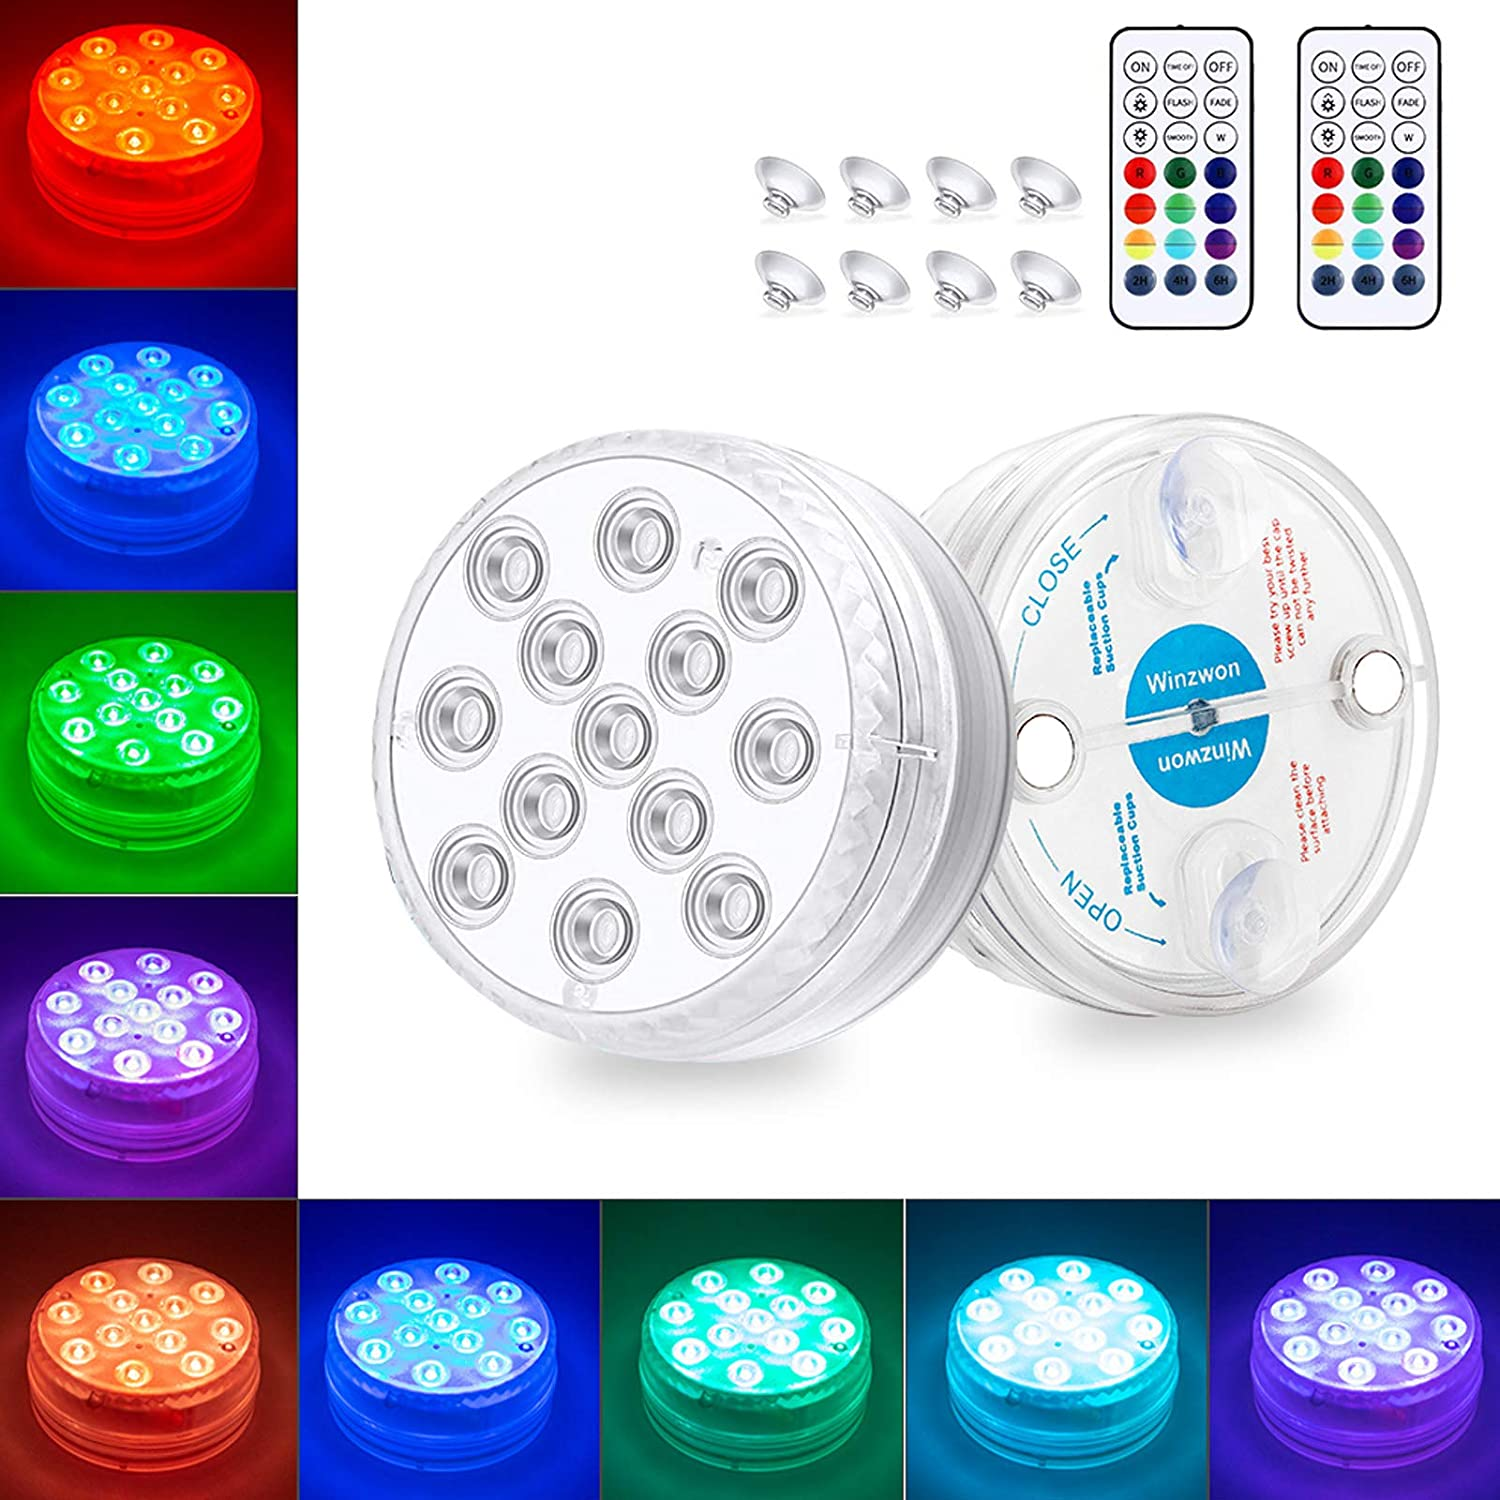 Winzwon Submersible Led Lights 2 Pack with Remote, Magnet, Suction Cups, IP68 Waterproof 13 Led Pool Lights for Pond Fountain Vase Fish Tank Wedding Decoration Battery Operated (Not Included)